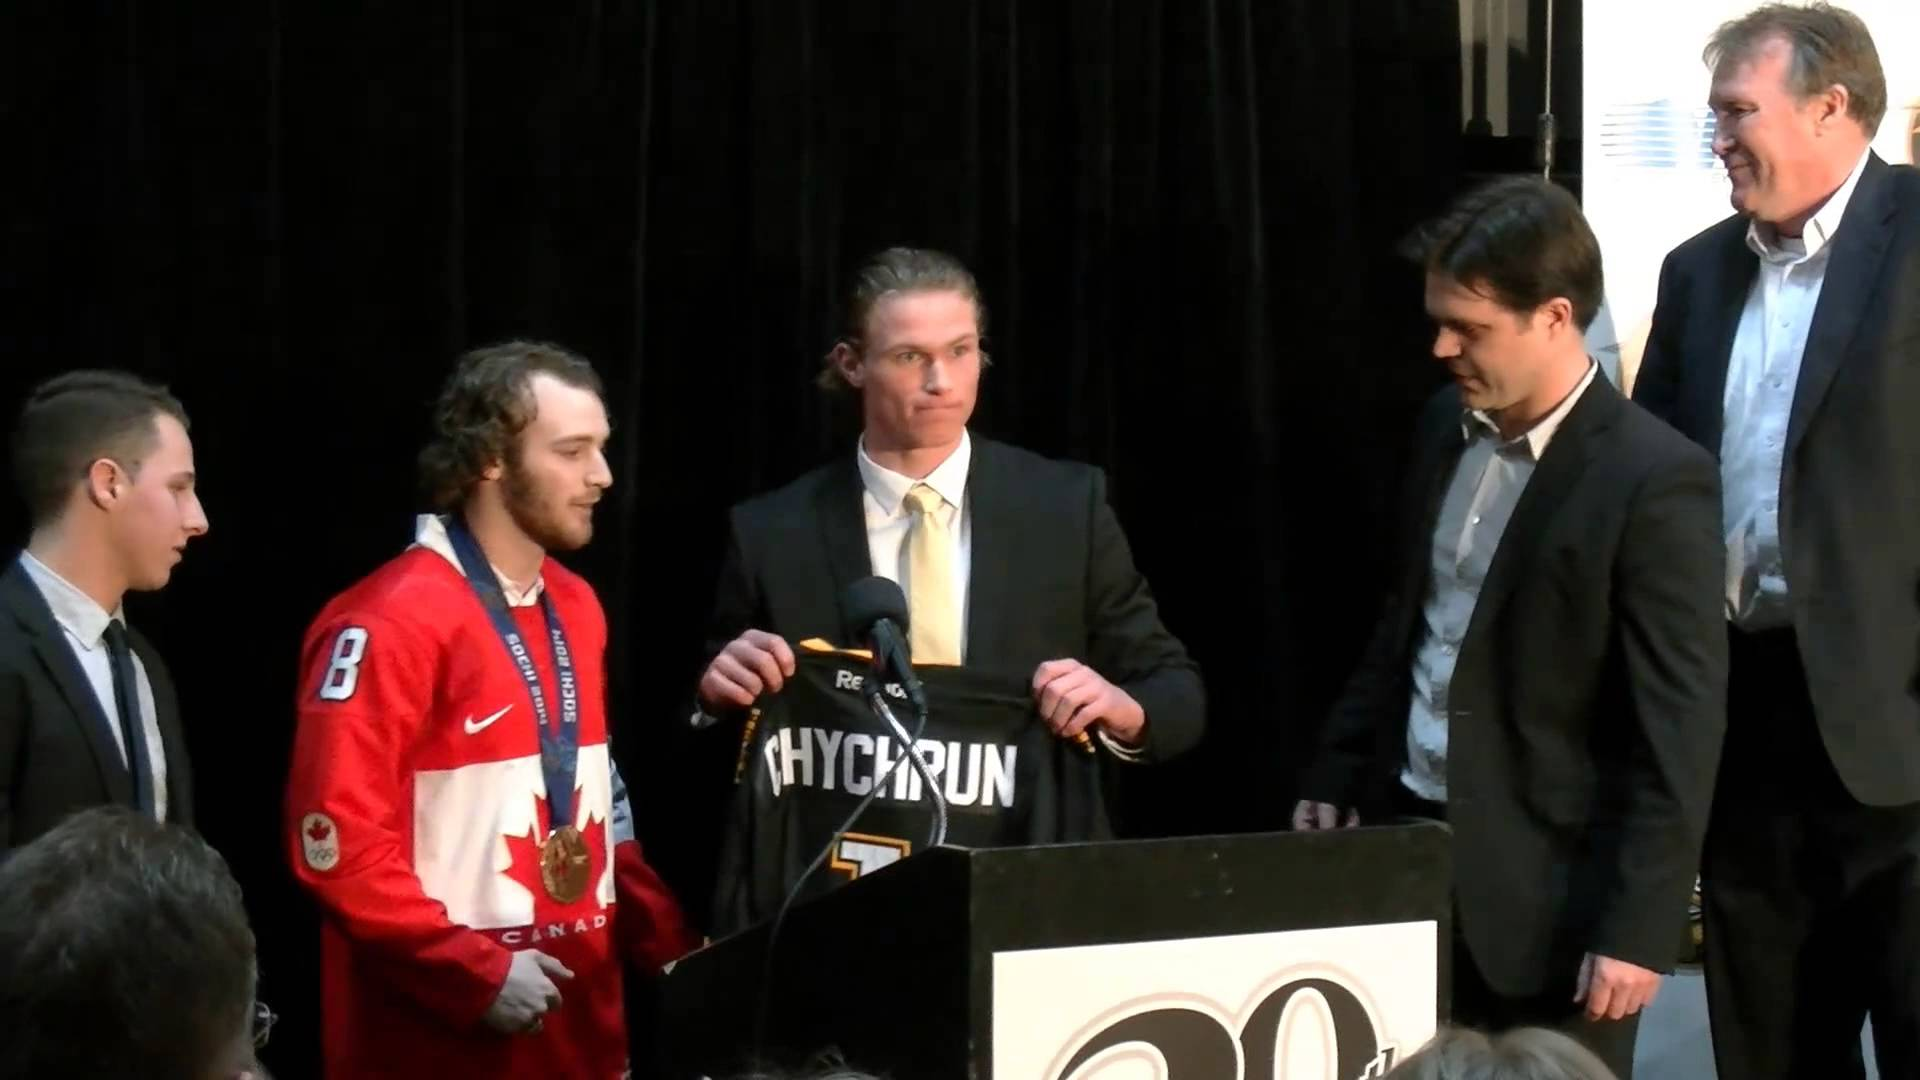 The Sting selects Jakob Chychrun first overall in the OHL Priority Selection Apr. 4, 2014.